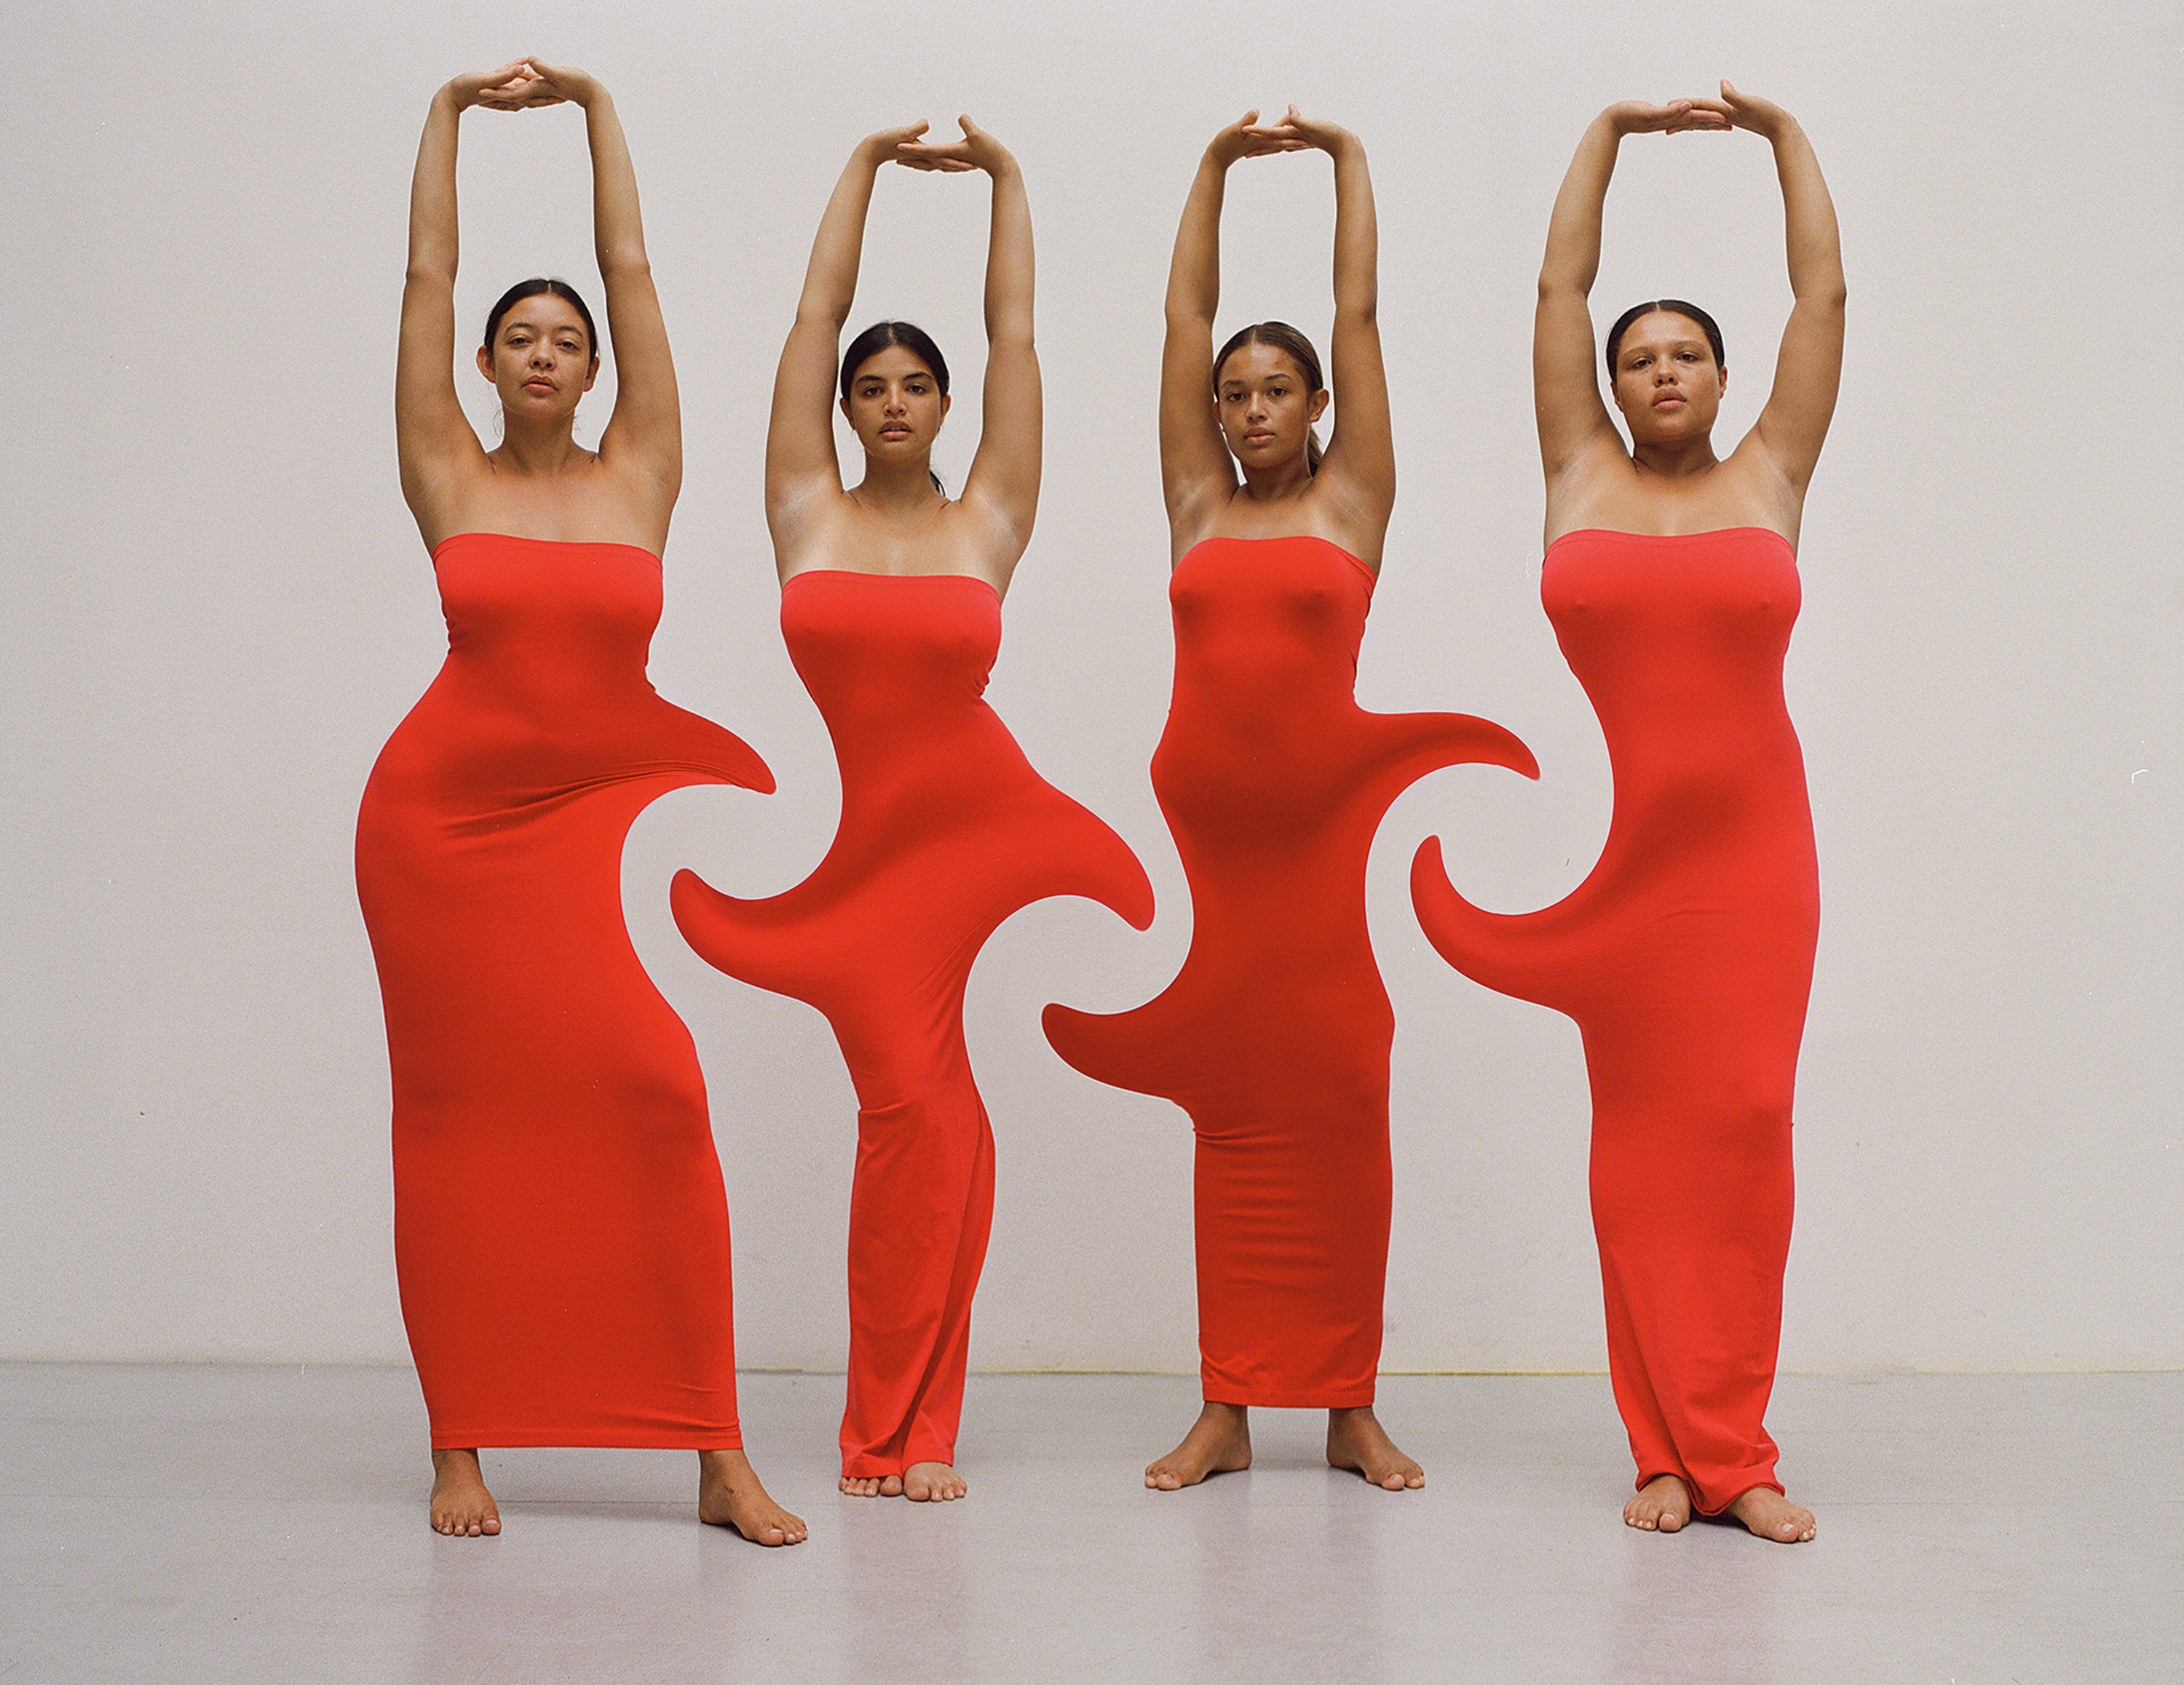 Four women with their arms raised in red dresses which are digitially manipualted to swirl together